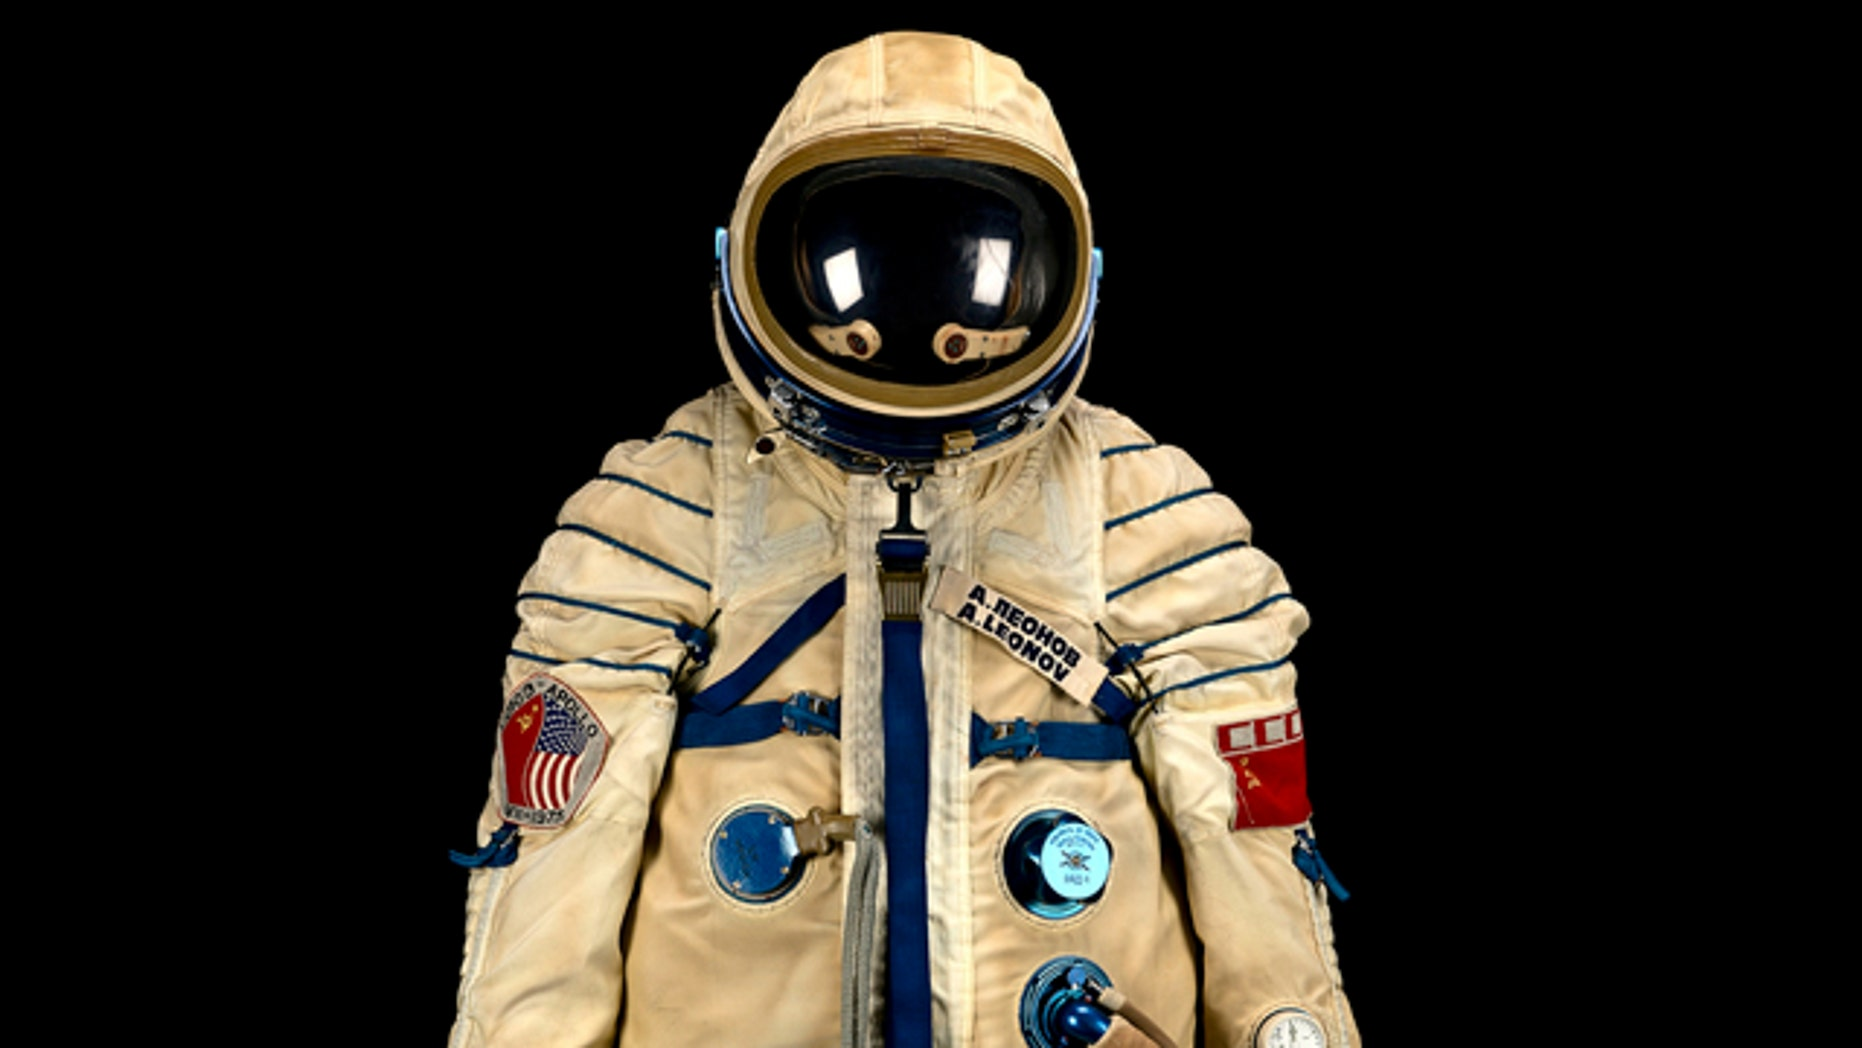 This spacesuit was worn by Russian cosmonaut Alexei Leonov during the historic Apollo-Soyuz Test Project, a joint space mission between the U.S. and Soviet Union in 1975.